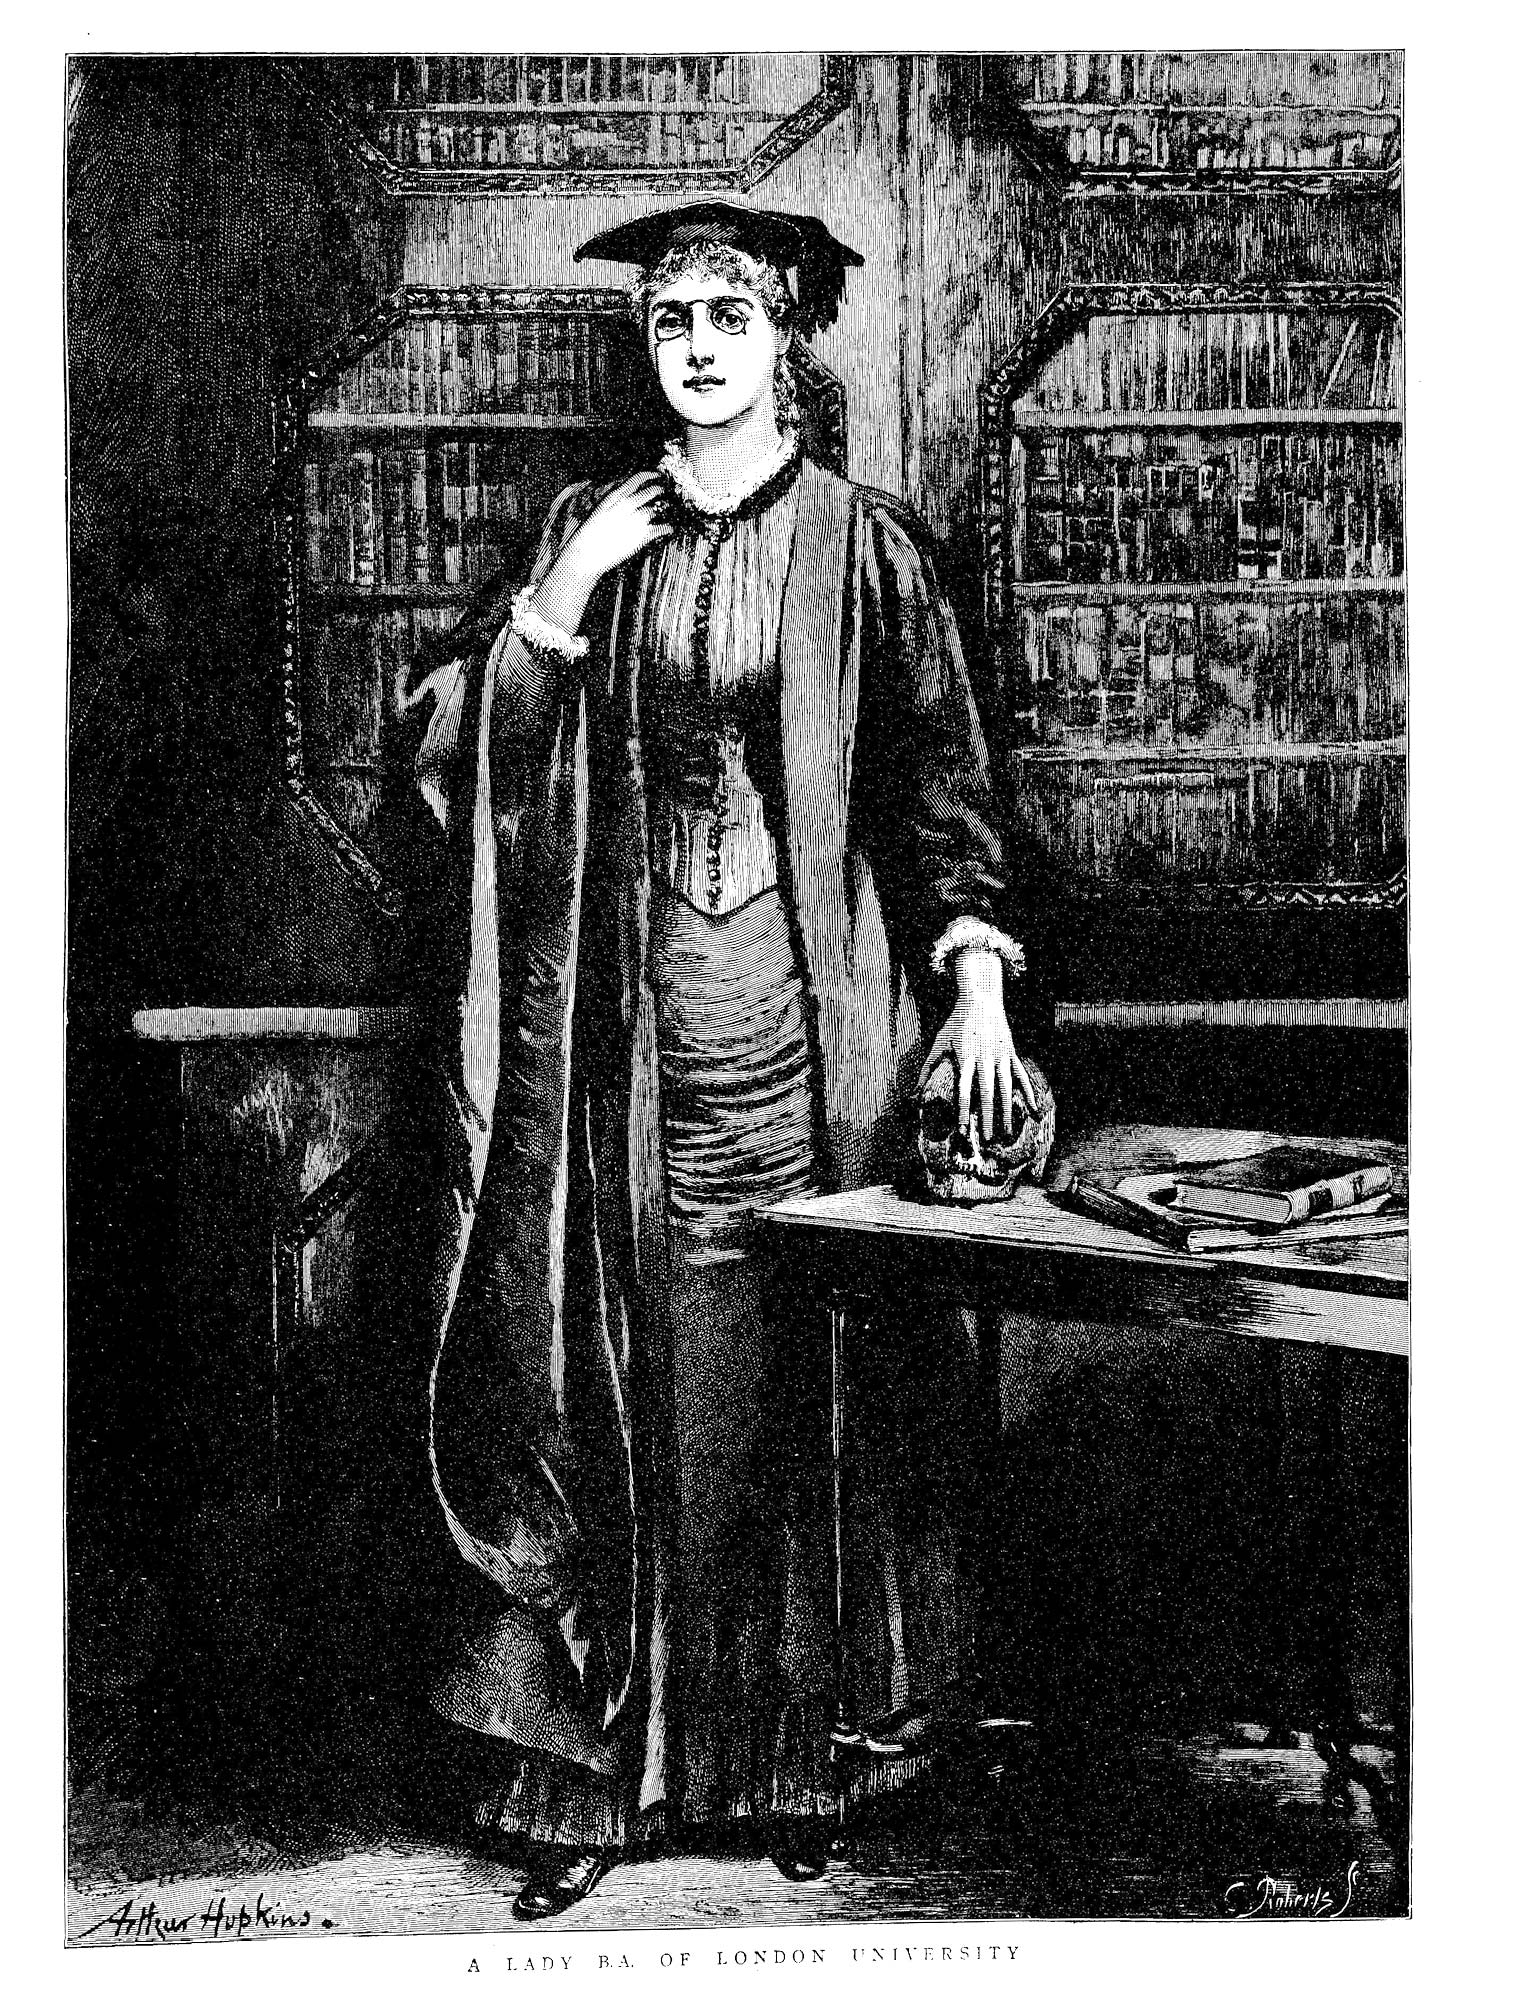 Picture of a female graduate of London University from the Graphic